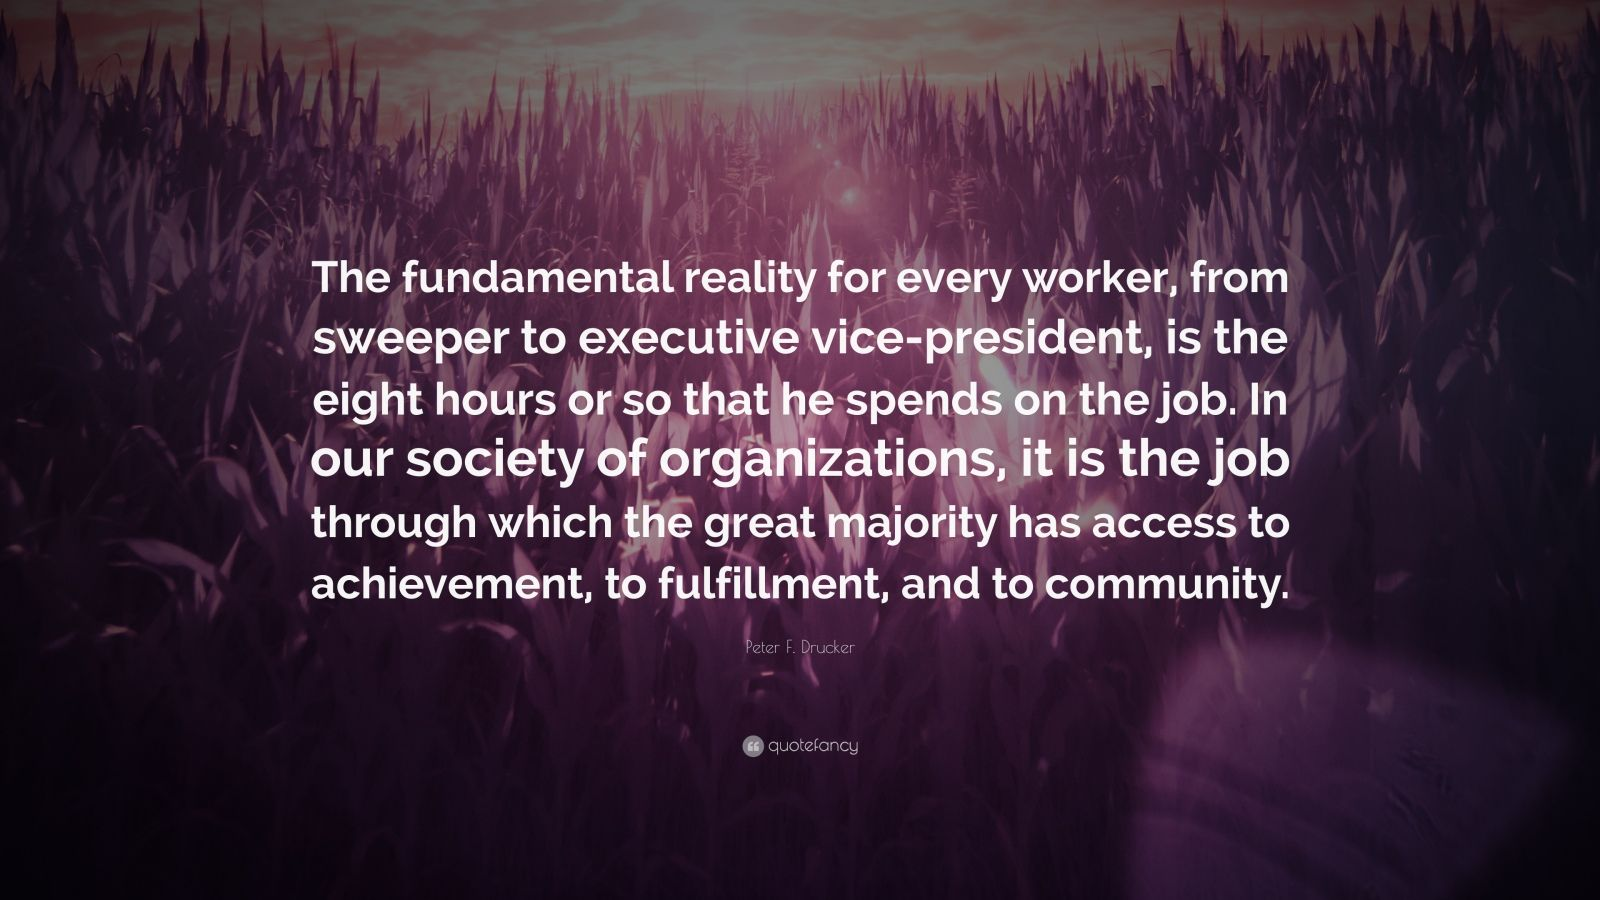 "Peter F. Drucker Quote: ""The fundamental reality for every worker, from sweeper to executive vice-president, is the eight hours or so that he spends on the job. In our society of organizations, it is the job through which the great majority has access to achievement, to fulfillment, and to community."""